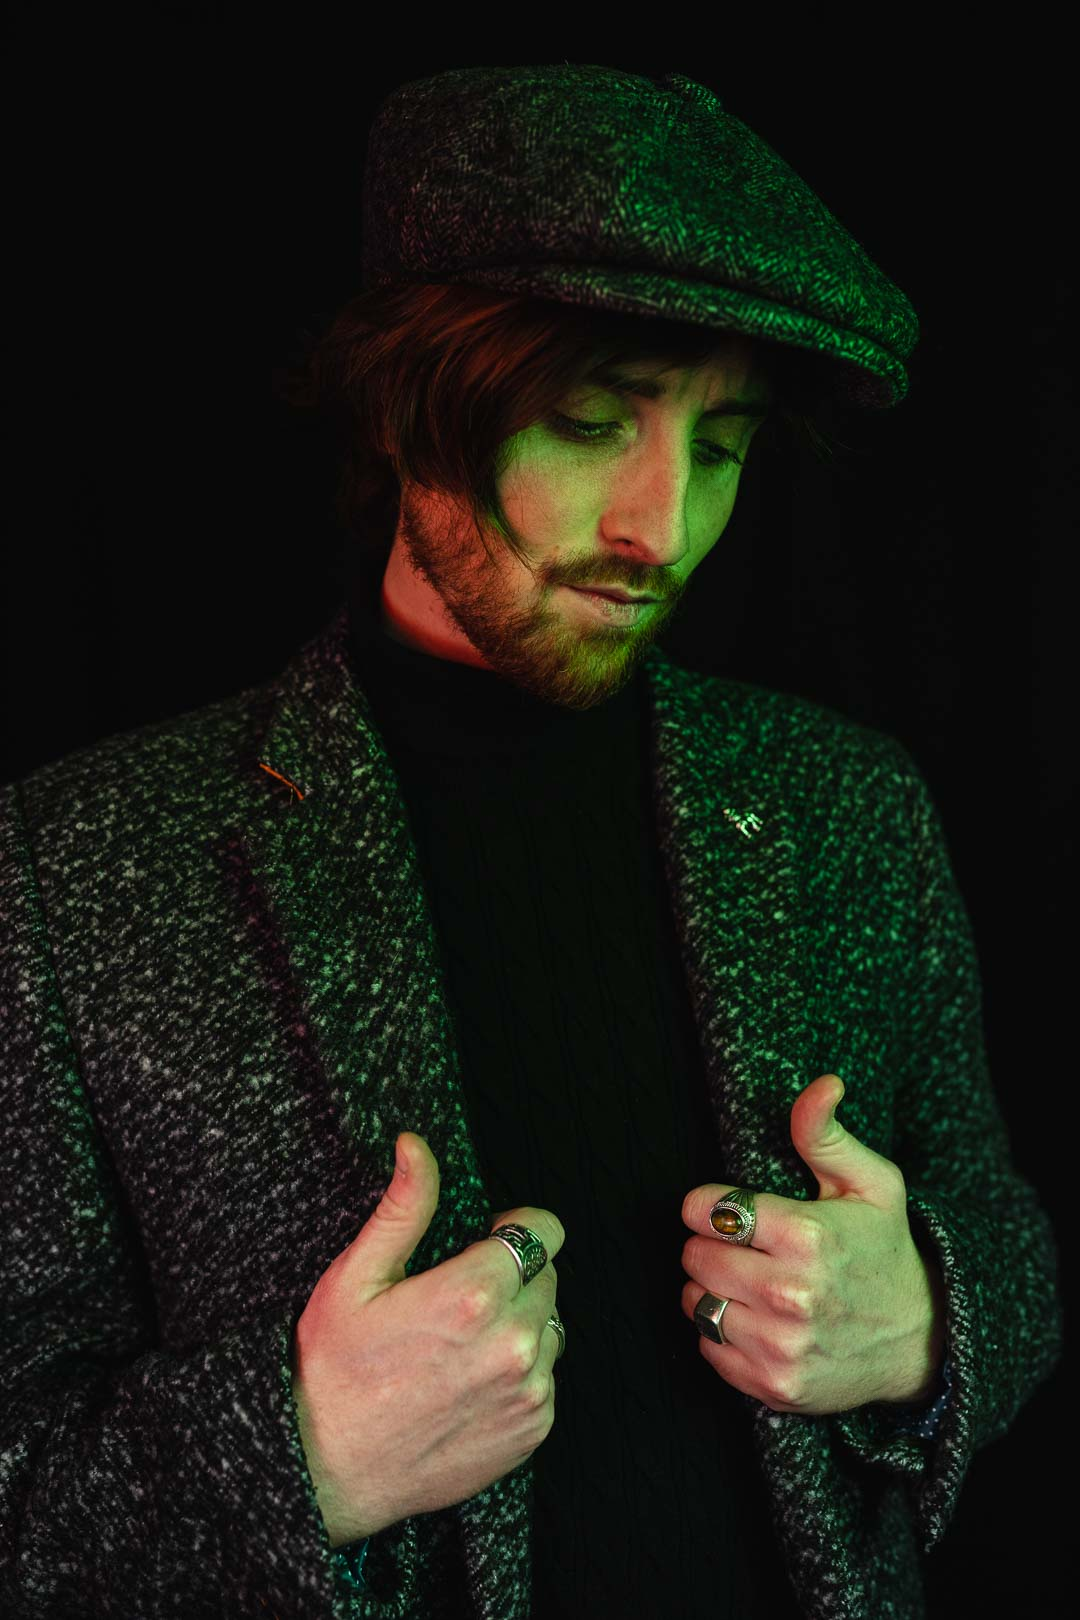 Portrait of a man dressed in a tweed jacket on a black background with green light reflections